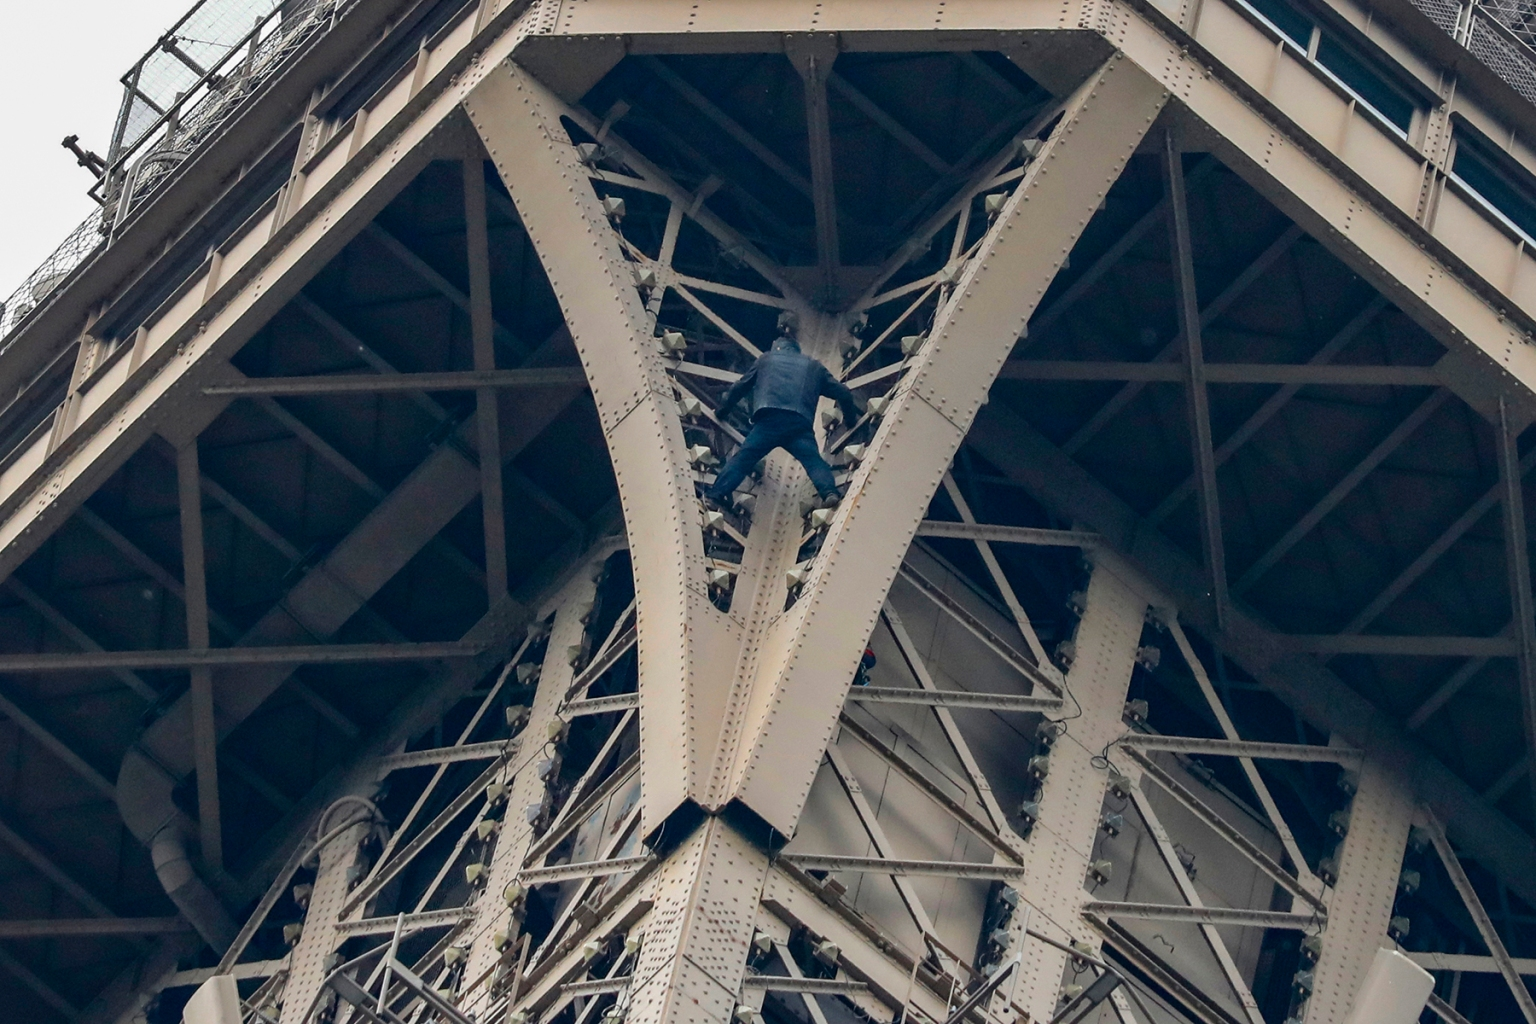 A man climbs to the top of the Eiffel Tower, in Paris, without any protection, on May 20. The Eiffel Tower was evacuated after someone was spotted climbing the Paris landmark. FRANCOIS GUILLOT/AFP/Getty Images